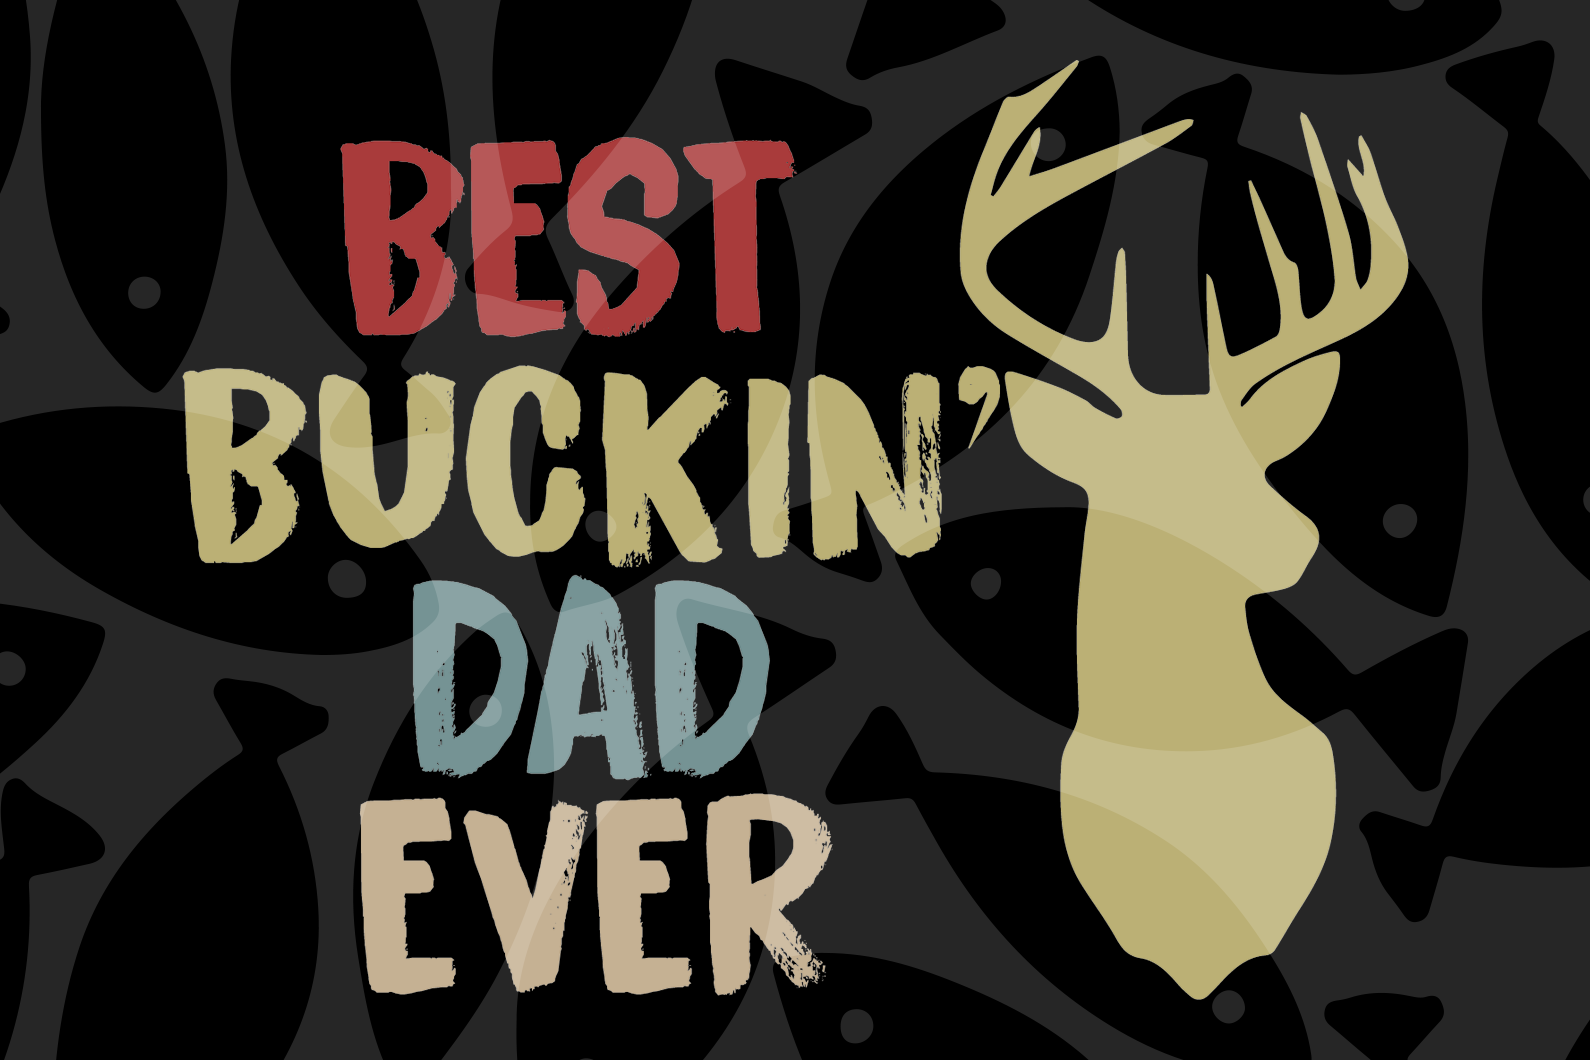 Best buckin' dad ever, buckin dad svg, buckin dad gift, buckin dad shirt, dad svg, dad gift, gift for dad,family svg, family shirt,family gift,trending svg, Files For Silhouette, Files For Cricut, SVG, DXF, EPS, PNG, Instant Download